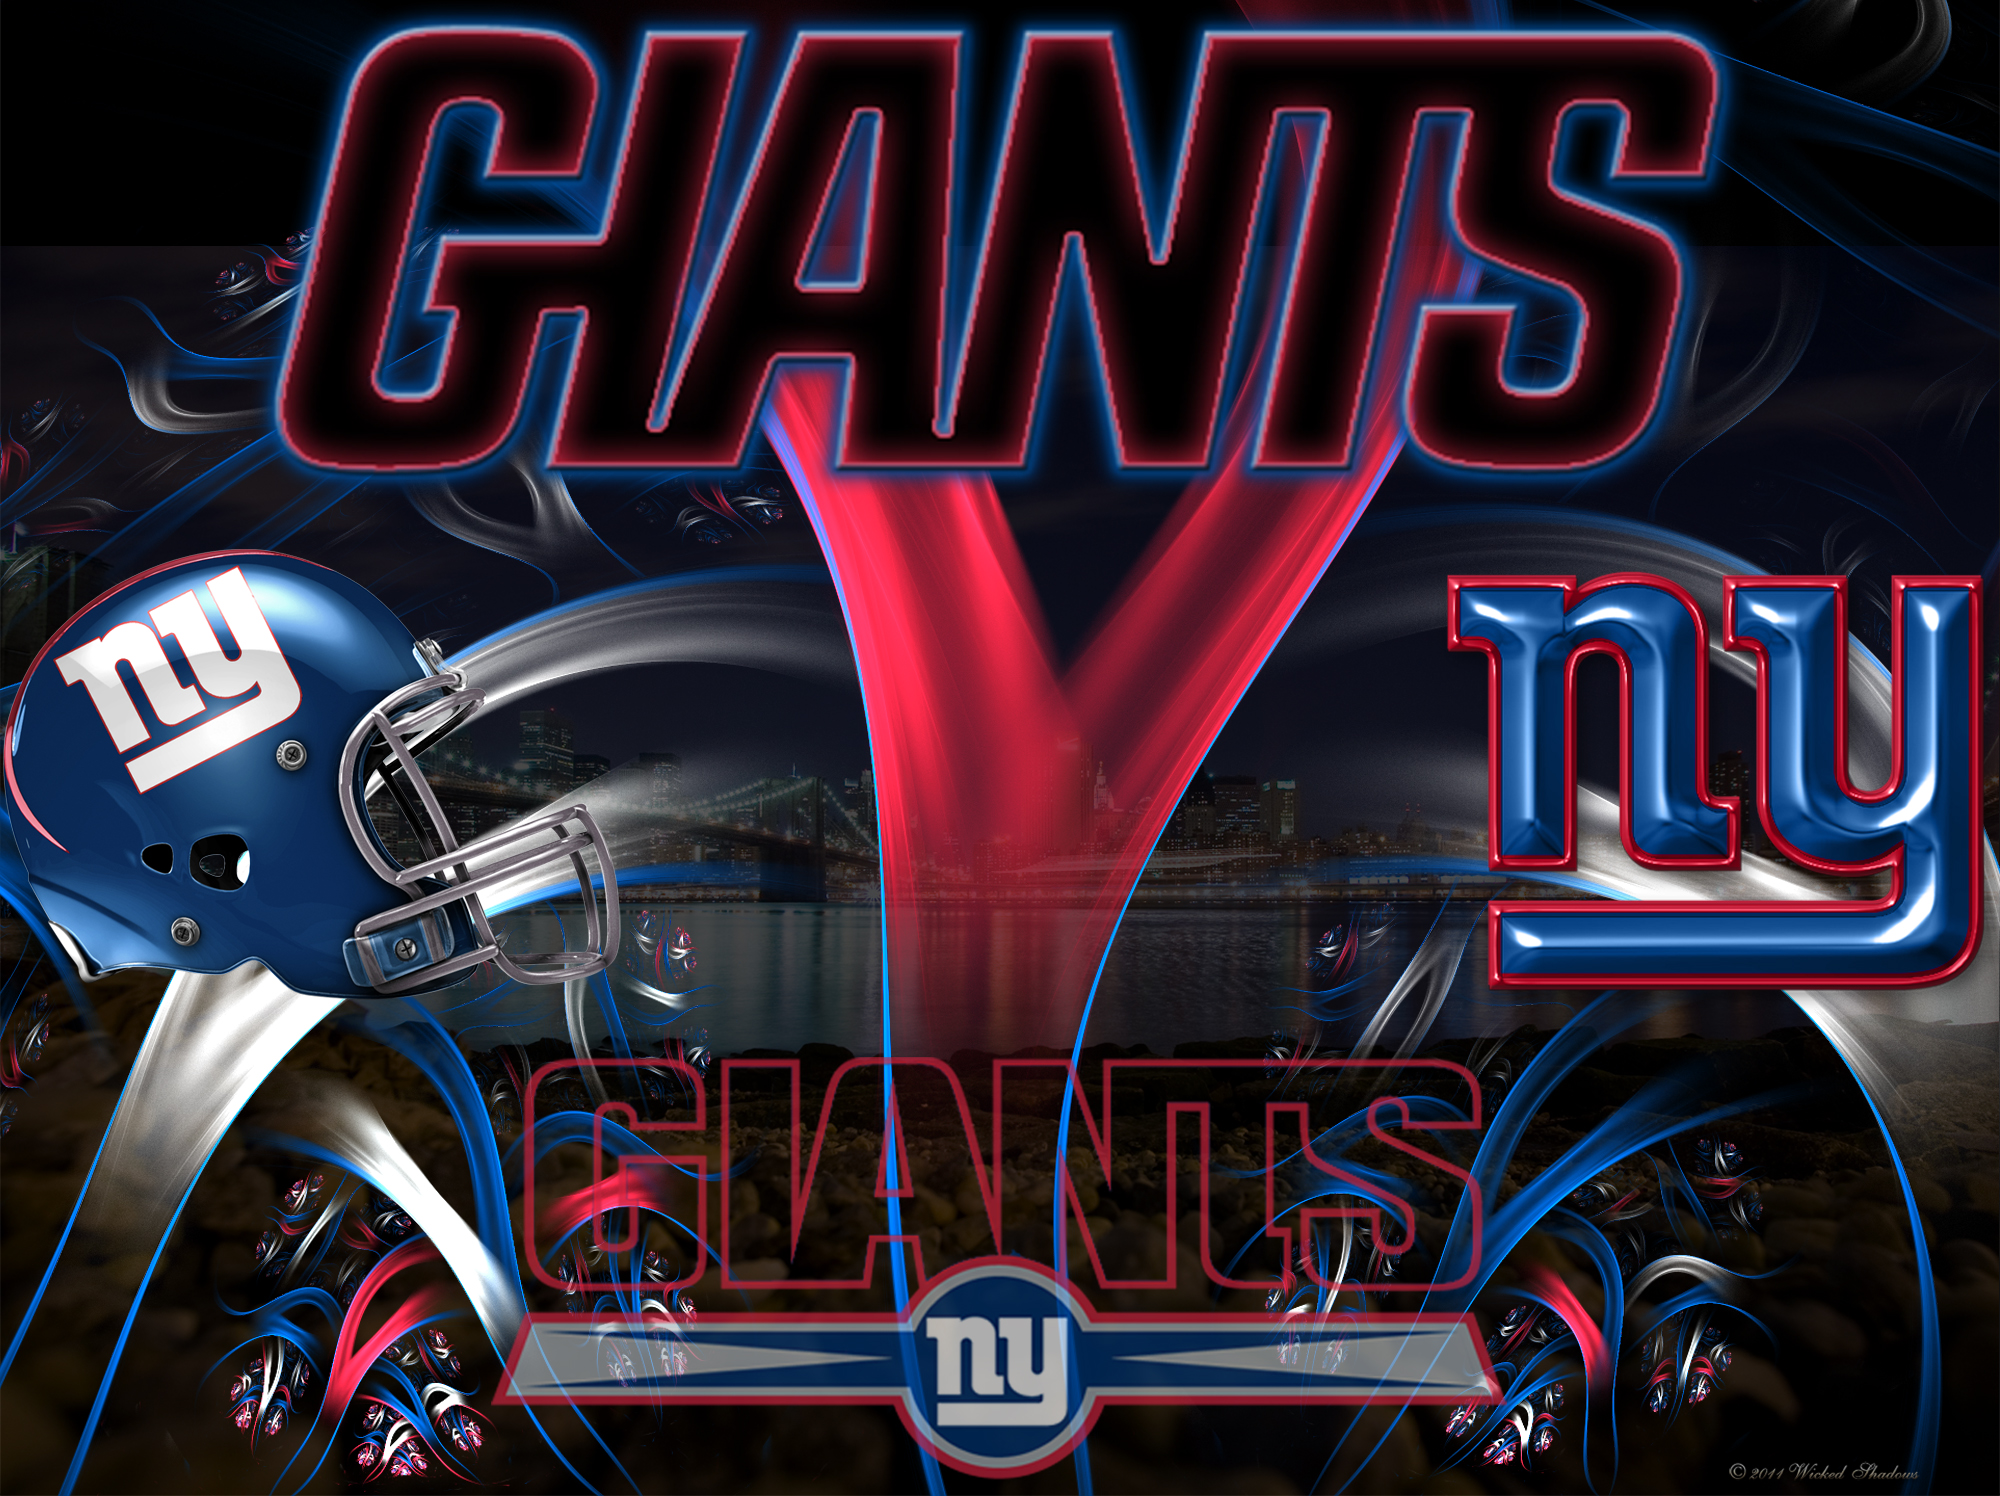 48 Ny Giants Wallpaper Downloads On Wa 1058287 Png Images Pngio